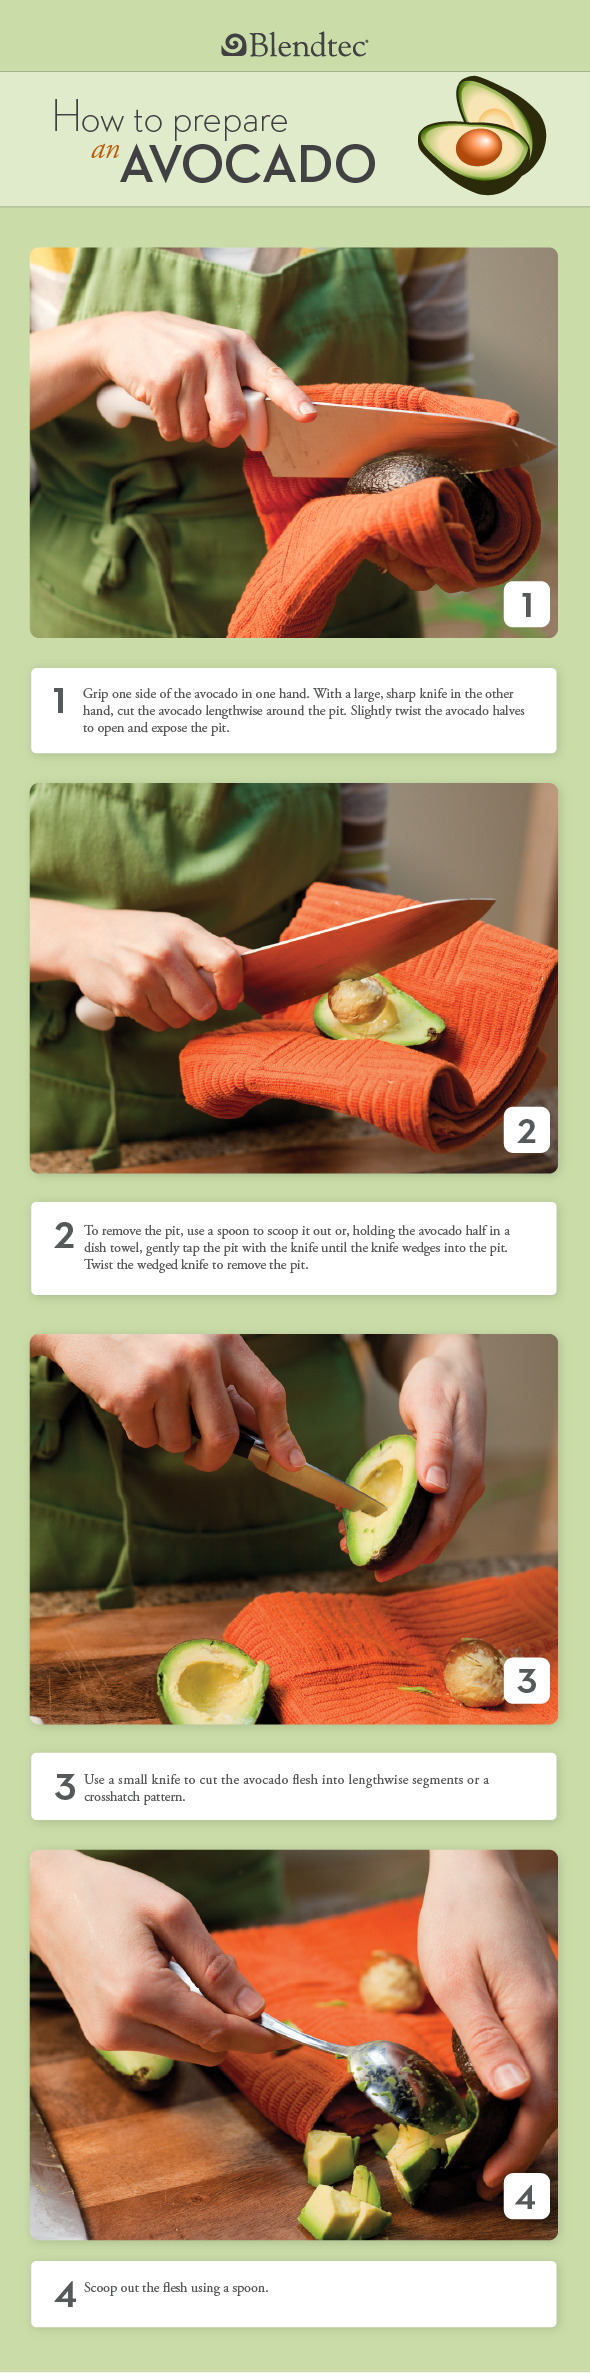 Graphic showing how to prepare an avocado